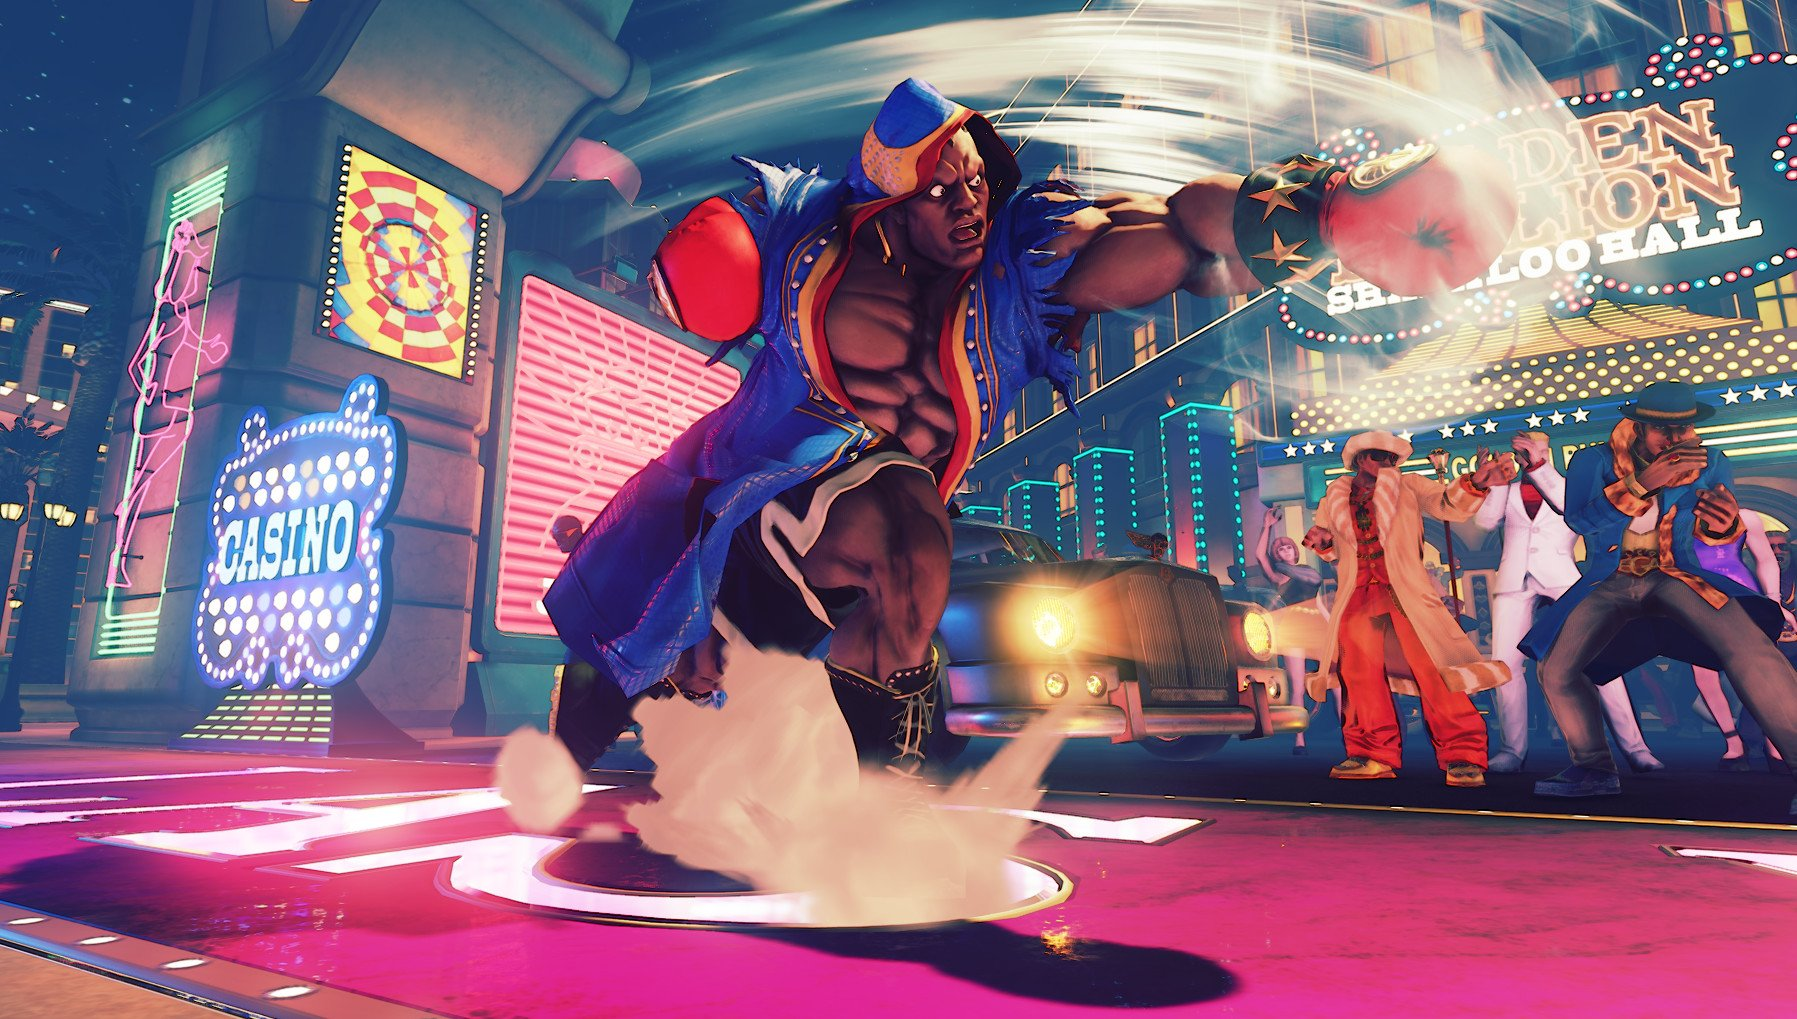 Street Fighter V players are picky about latency.